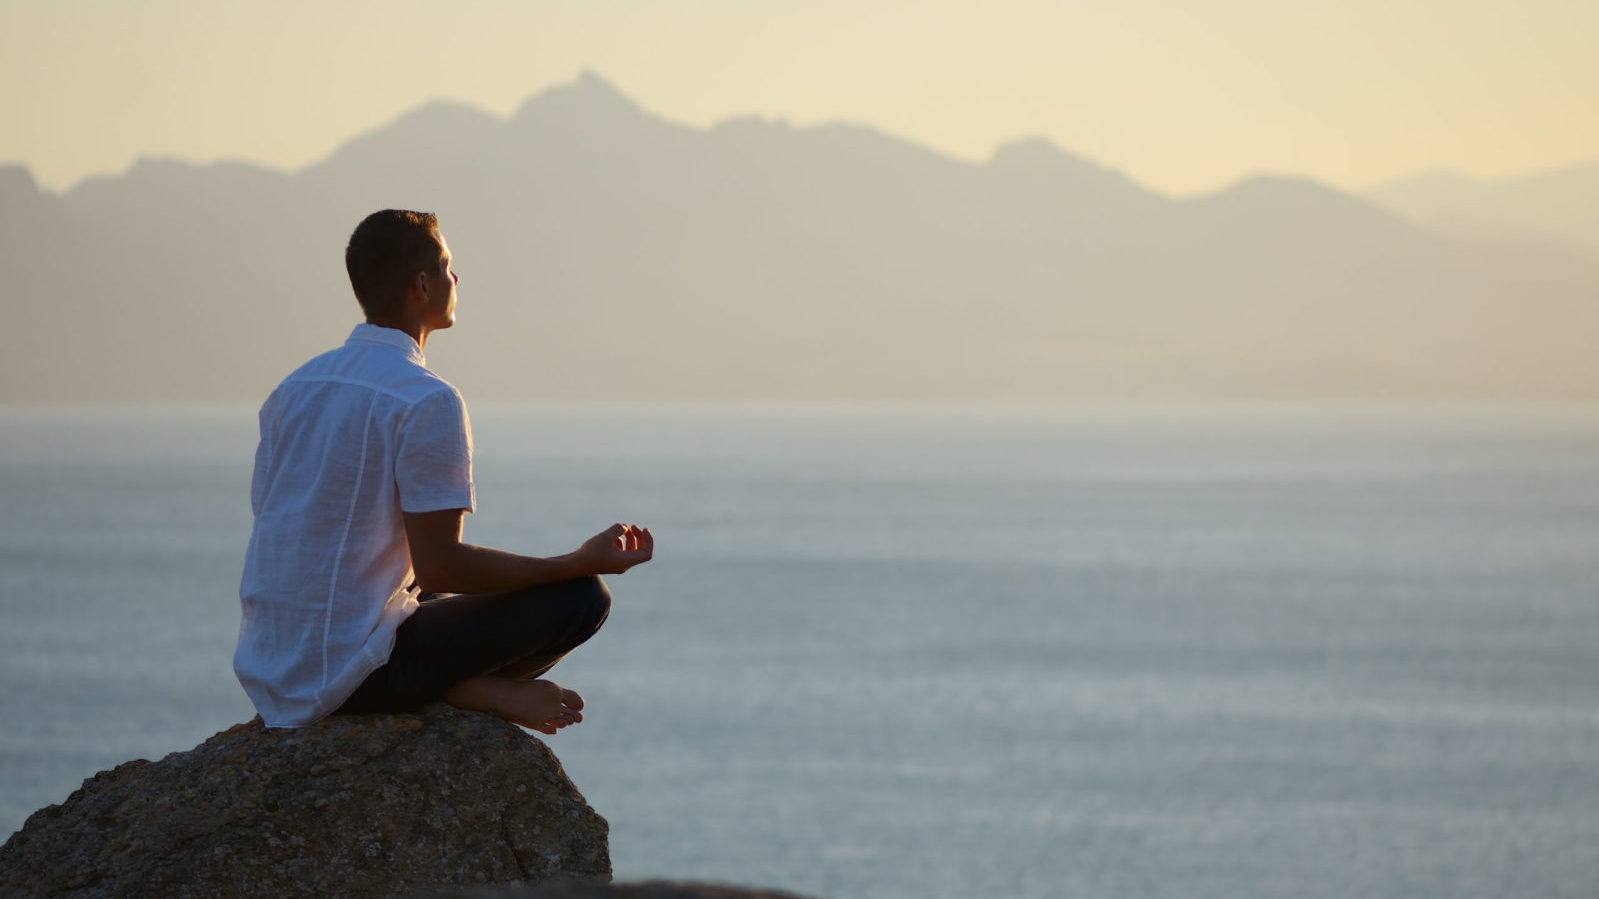 Guy sitting on a rock in the lotus position meditating